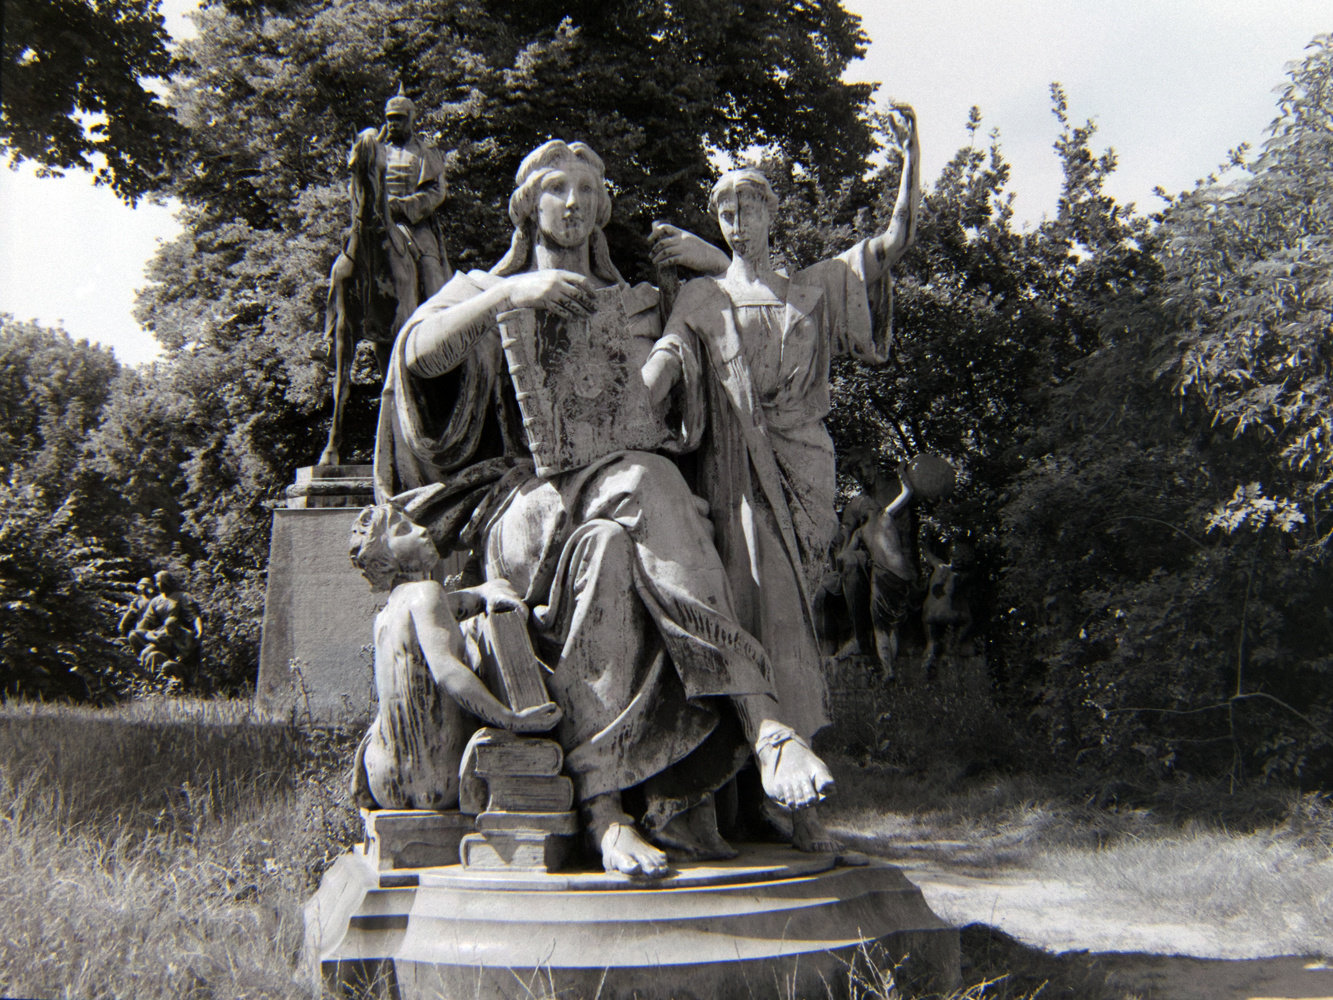 Baroque style statuary by William Watts